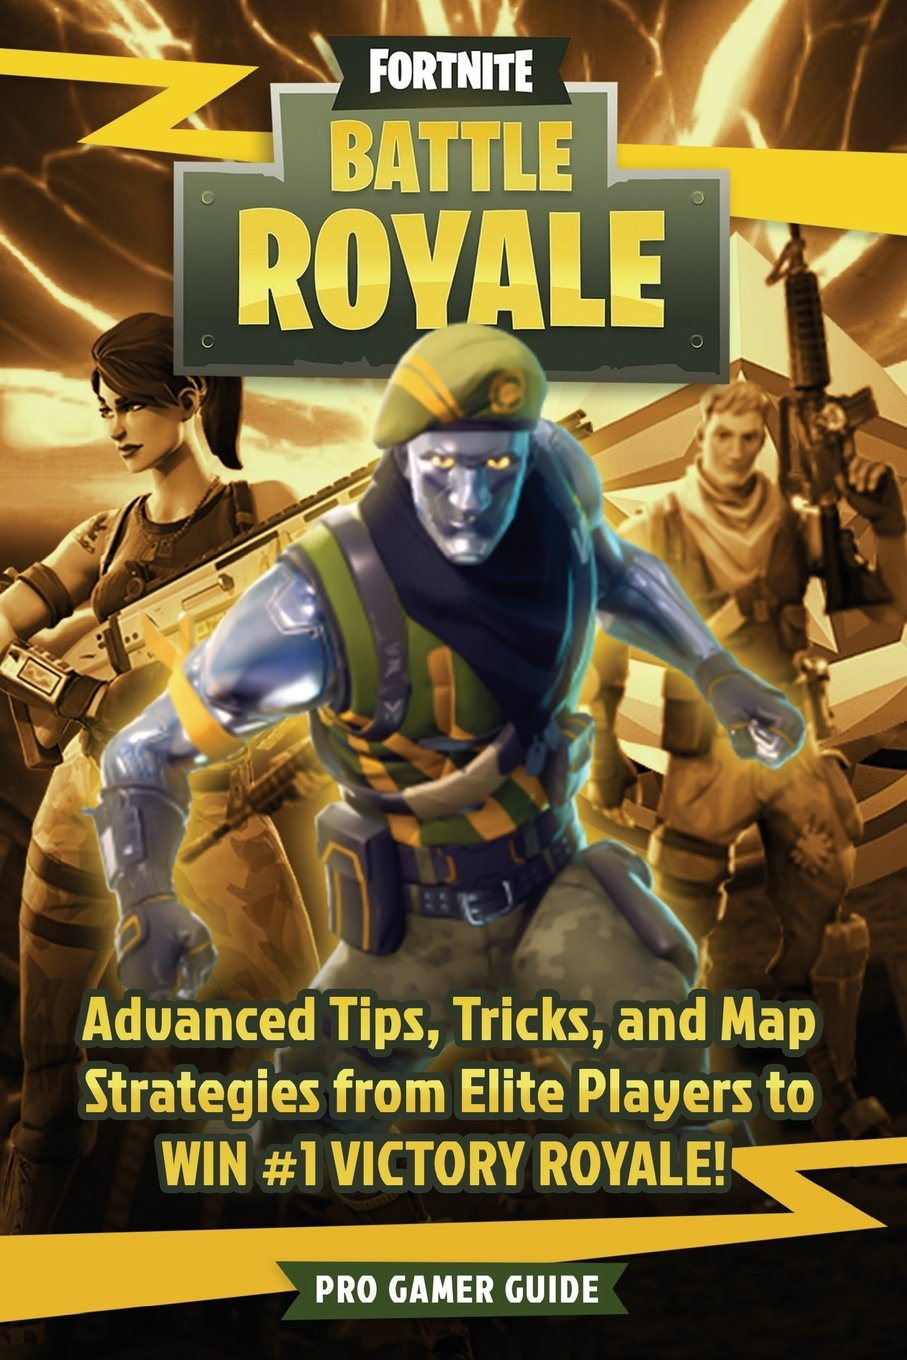 Fortnite: Battle Royale: Advanced Tips, Tricks, and Map Strategies from Elite Players to WIN #1 VICTORY ROYALE! Paperback – July 7, 2018 Pro Gamer Guide 1722498927 GAMES / Fantasy Sports